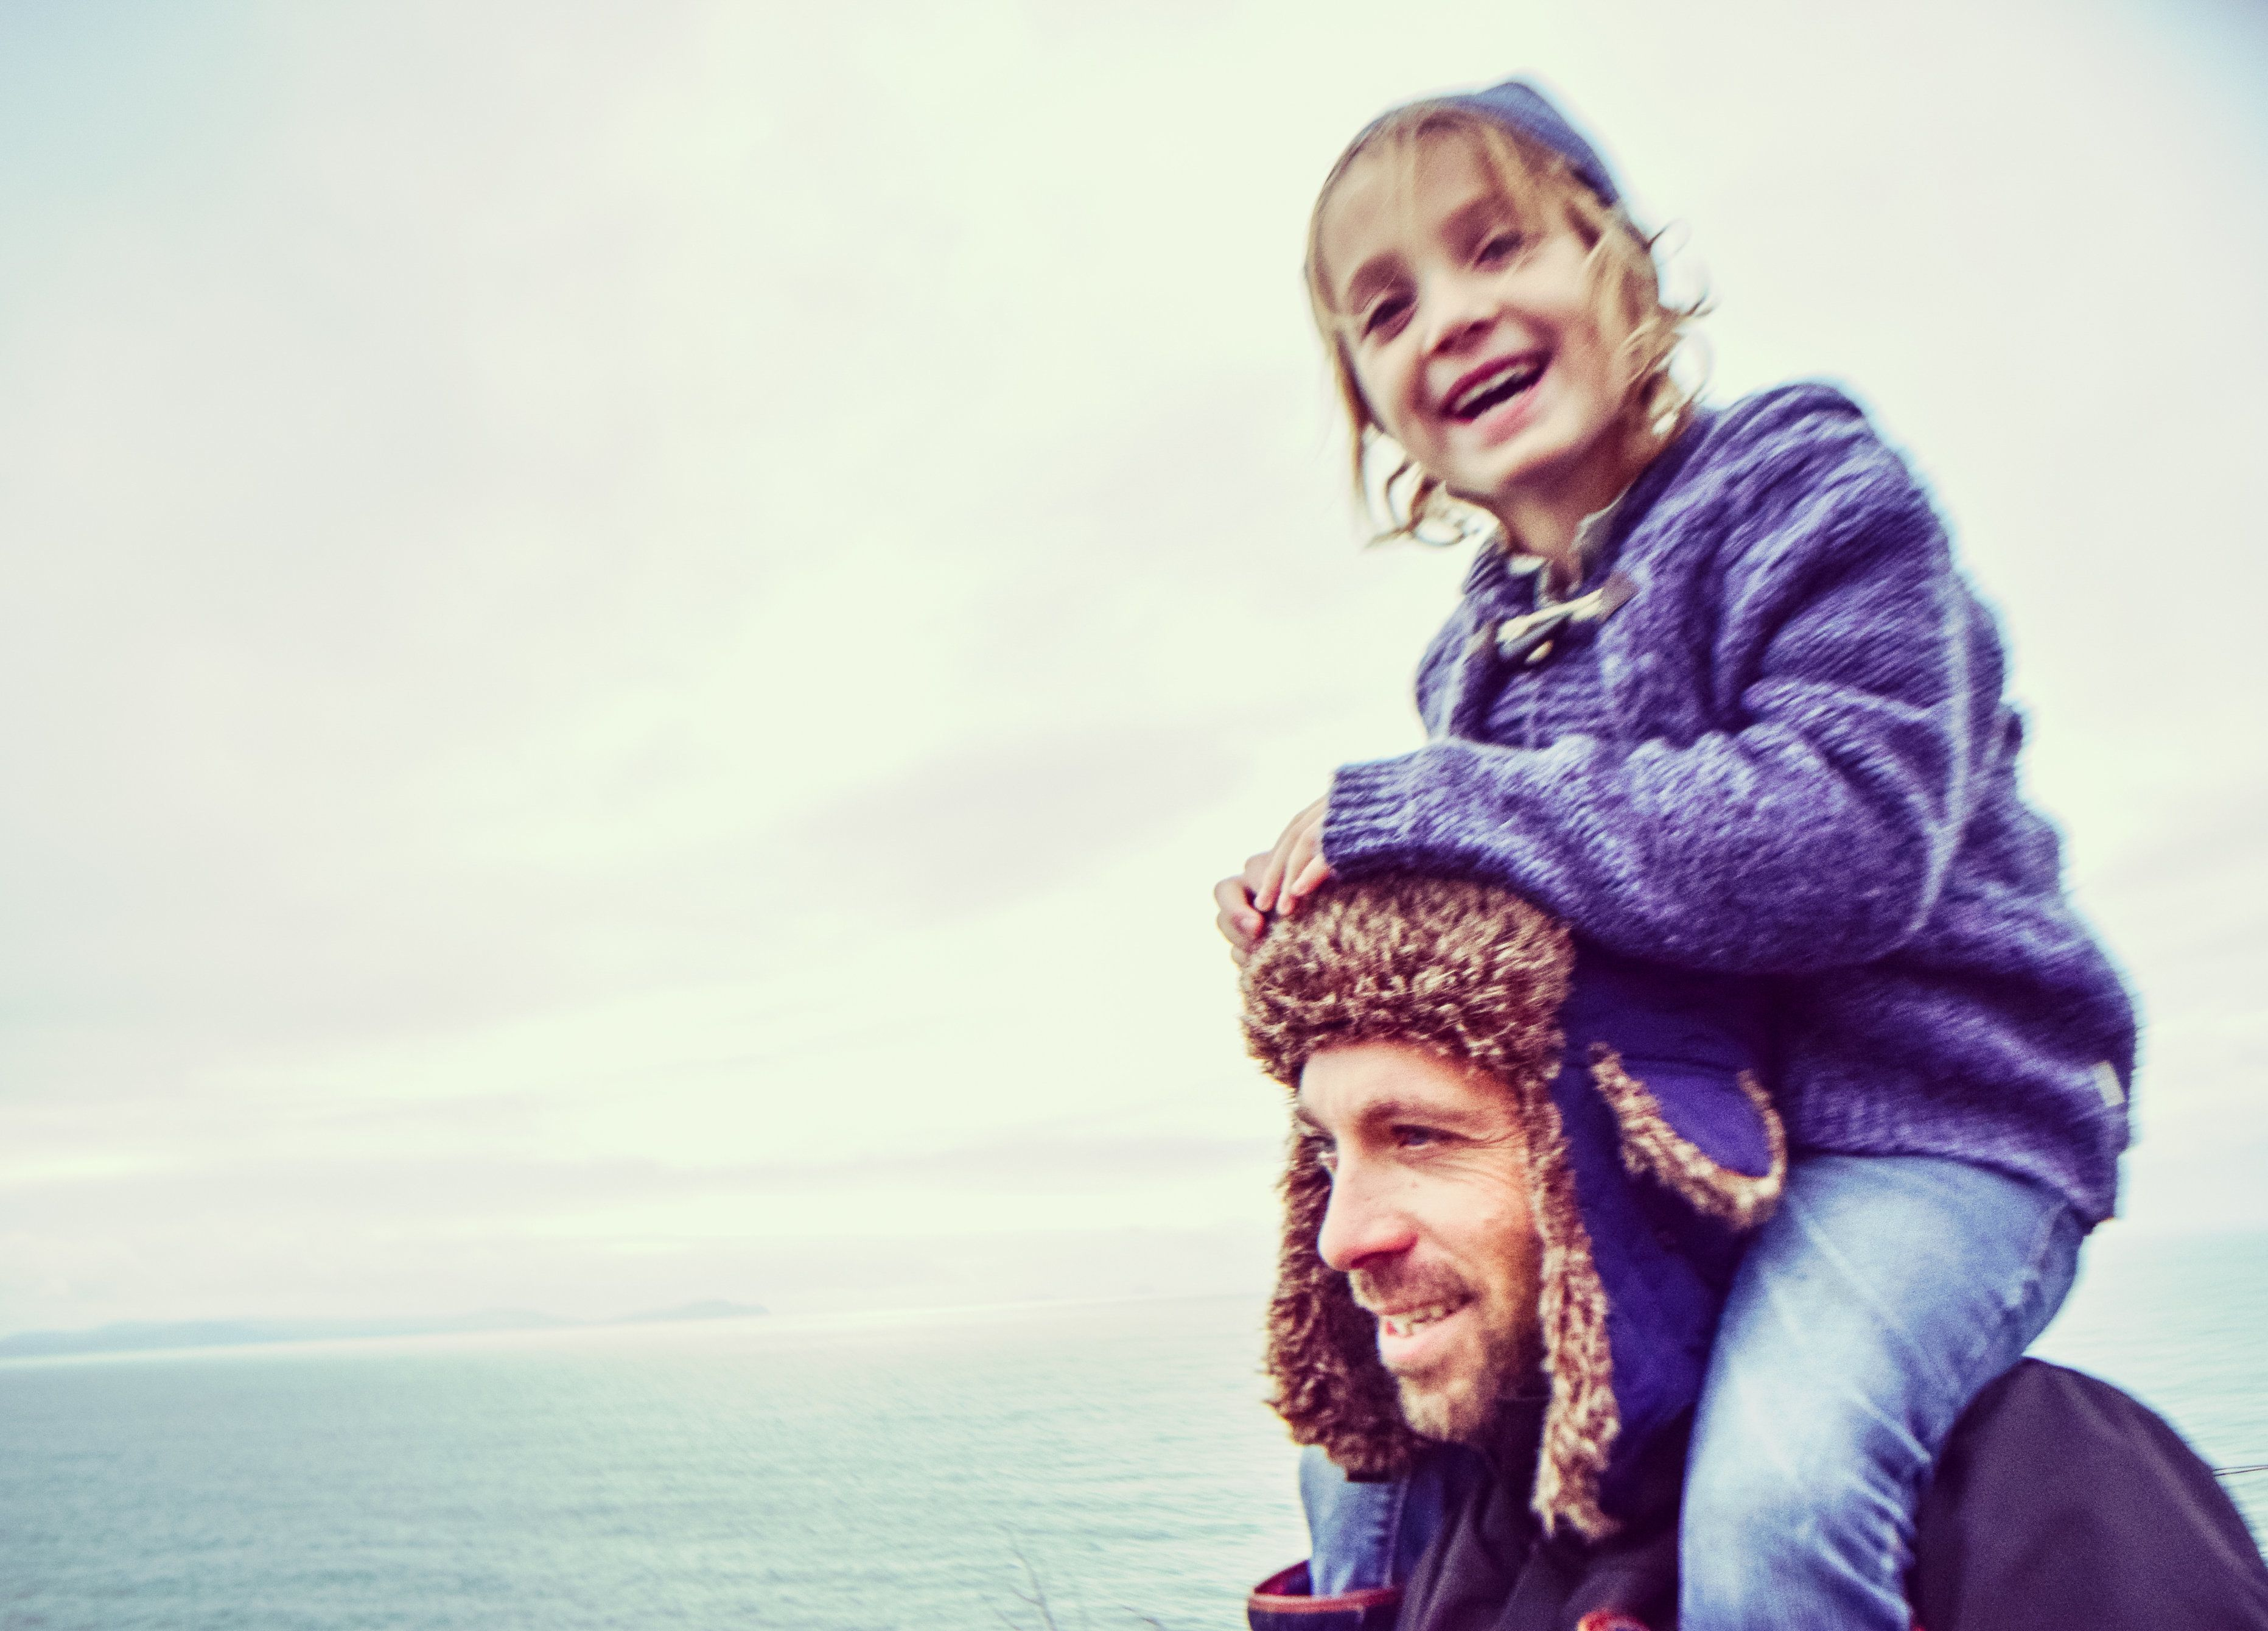 Little child catches a ride with dad, both are bundled for cold weather with an ocean backdrop